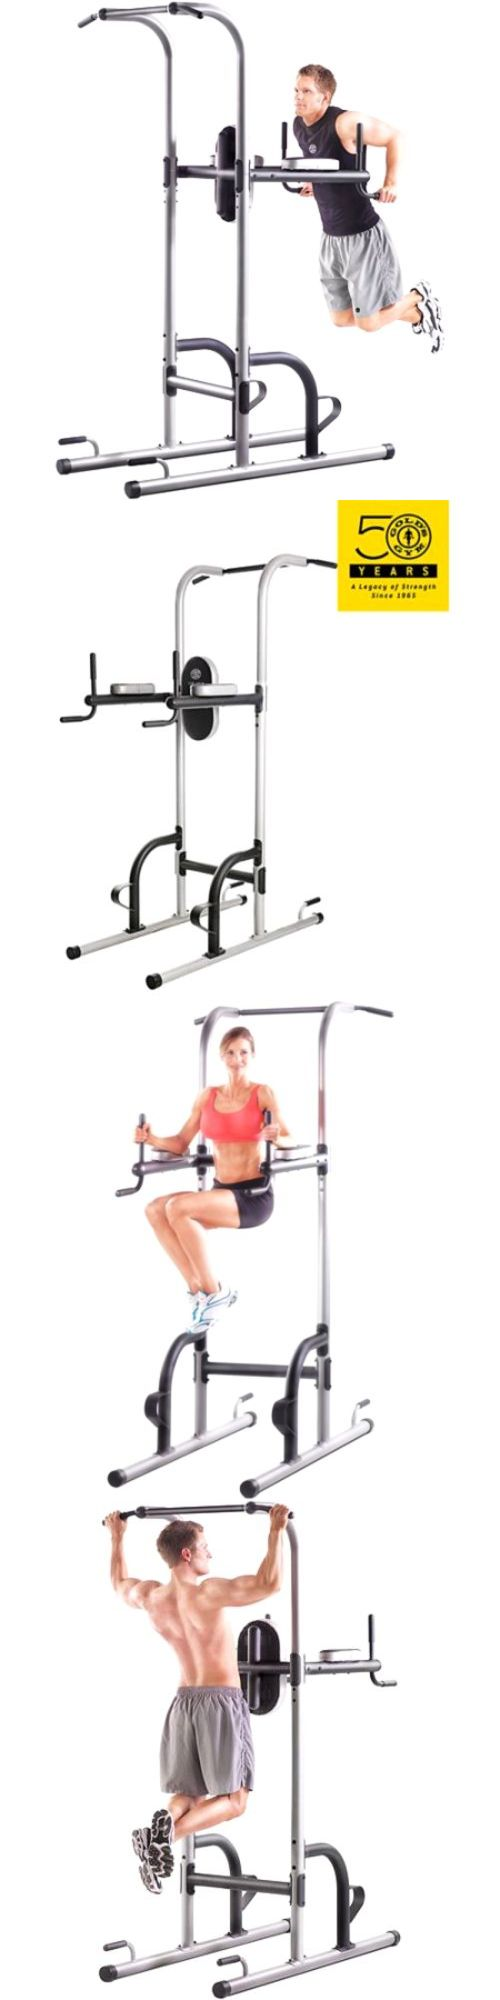 Home Gyms 158923: Power Tower Golds Gym Pull Push Chin Up Bar Exercise Dip Station Home Fitness BUY IT NOW ONLY: $127.48